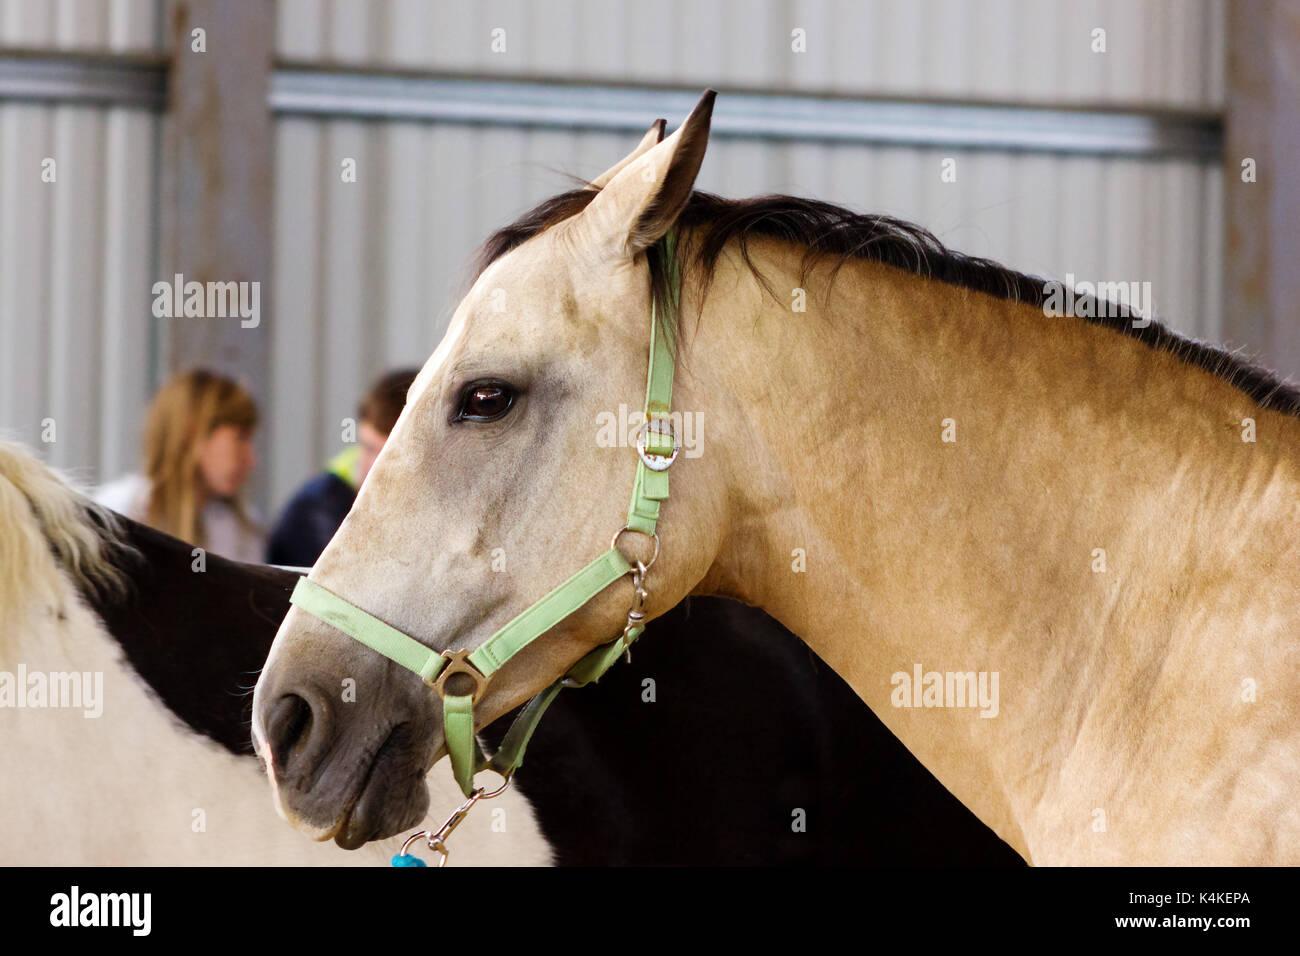 Dun horse learning to work without bridle on manege - Stock Image